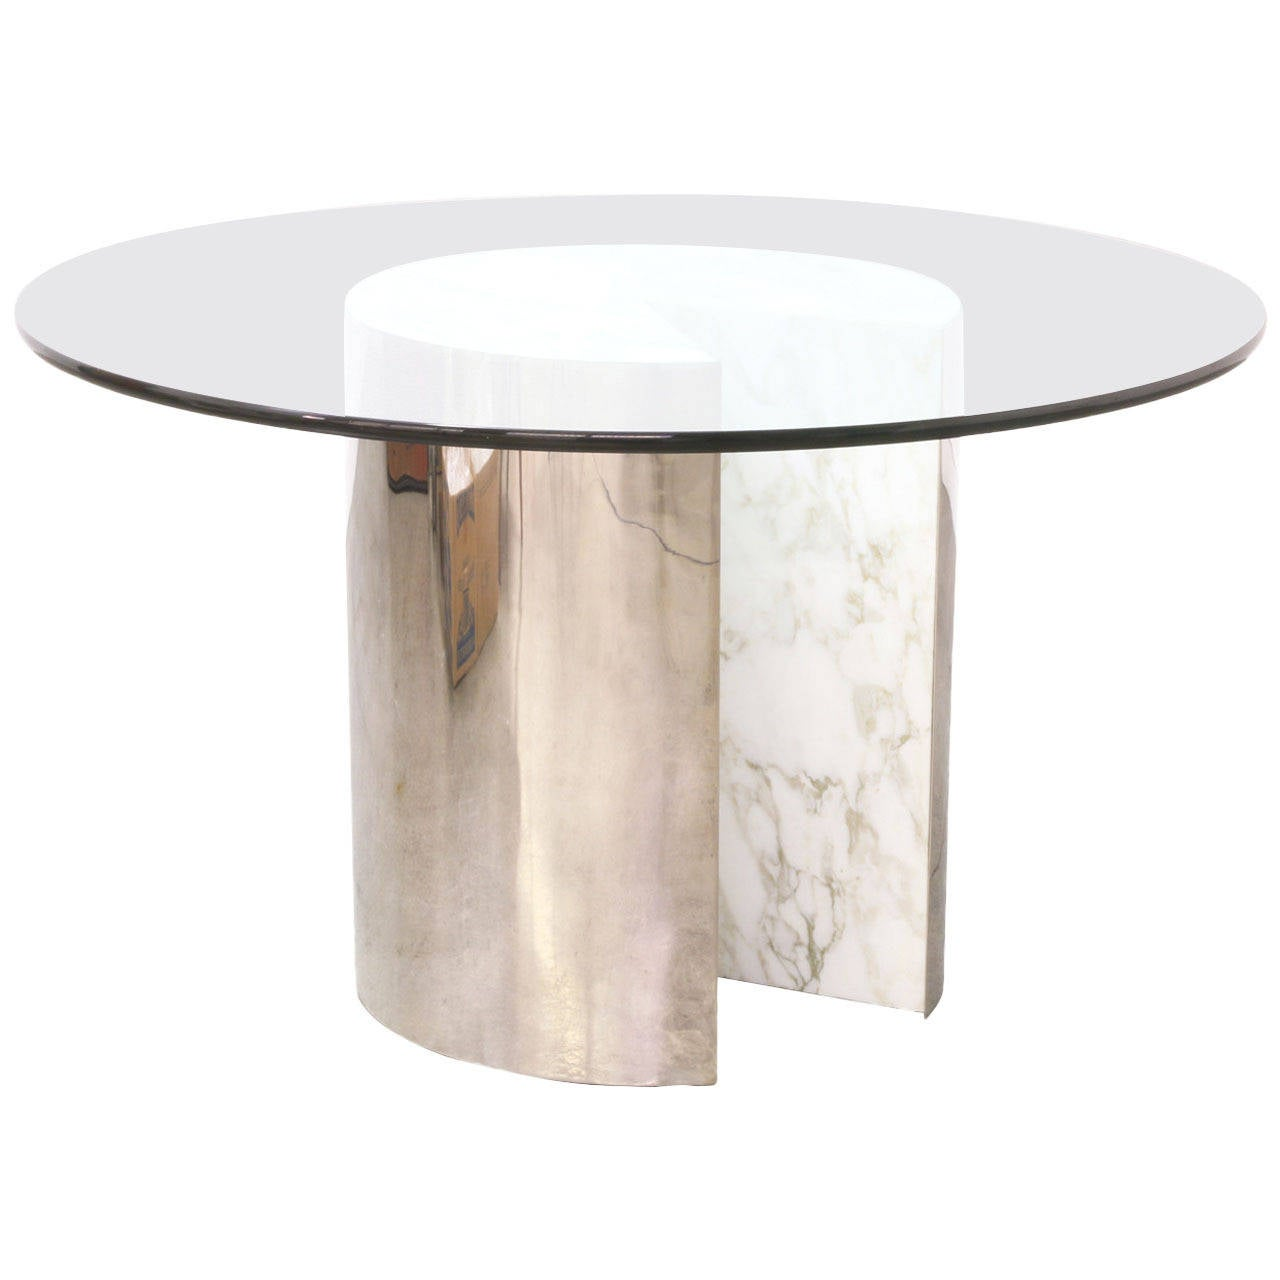 Vintage stainless steel and carrera marble dining table for Marble dining room table